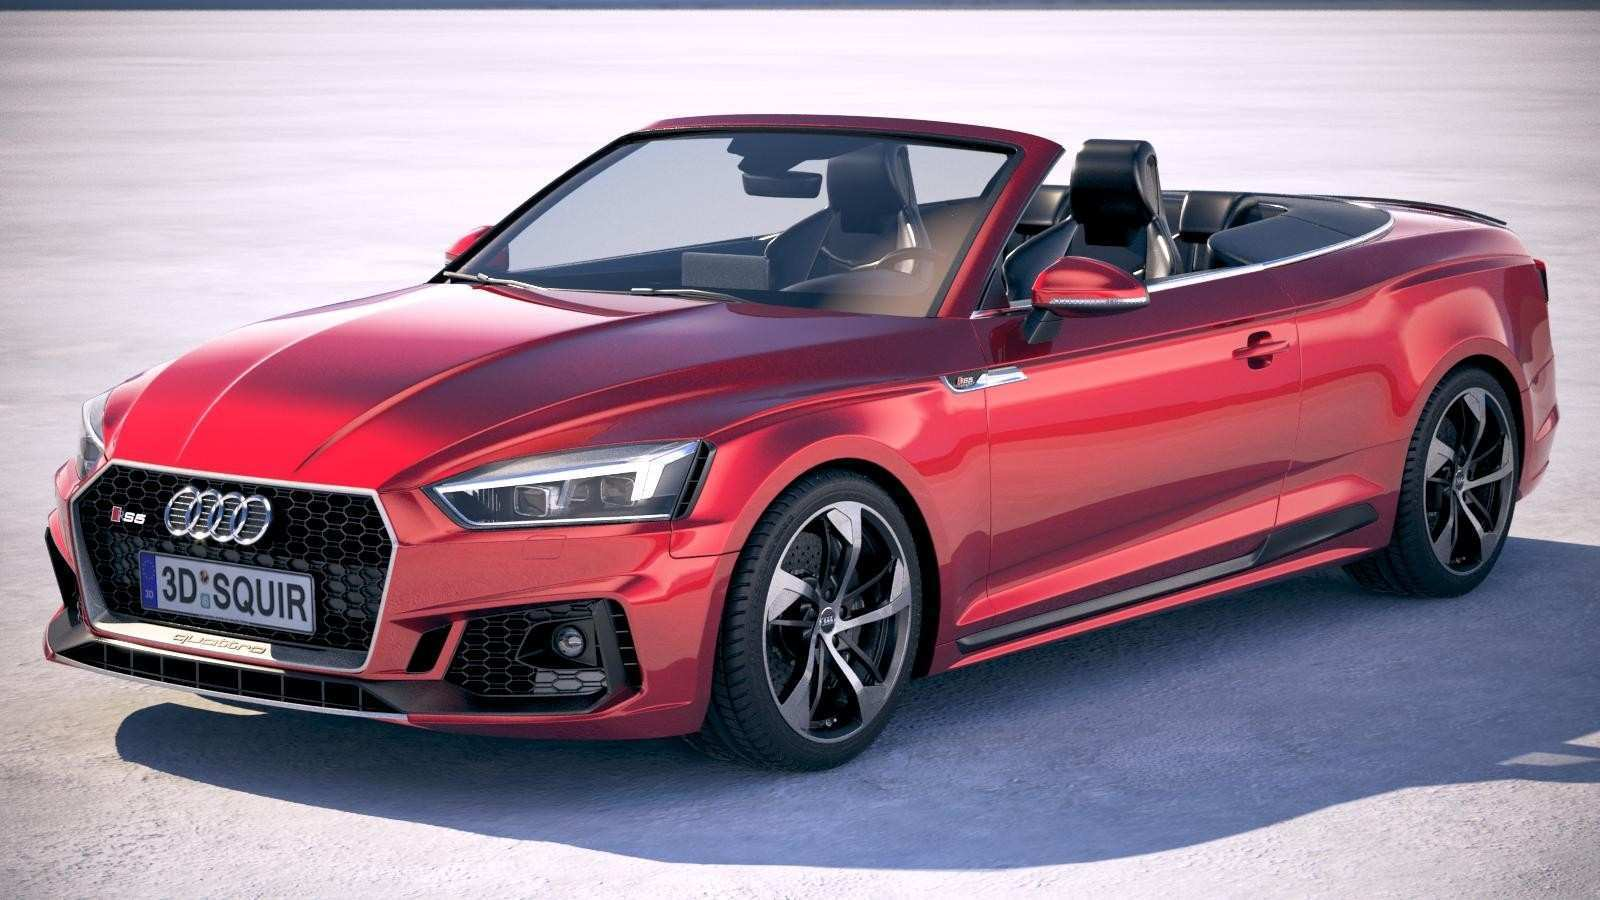 16 New 2019 Audi Rs5 Cabriolet Speed Test